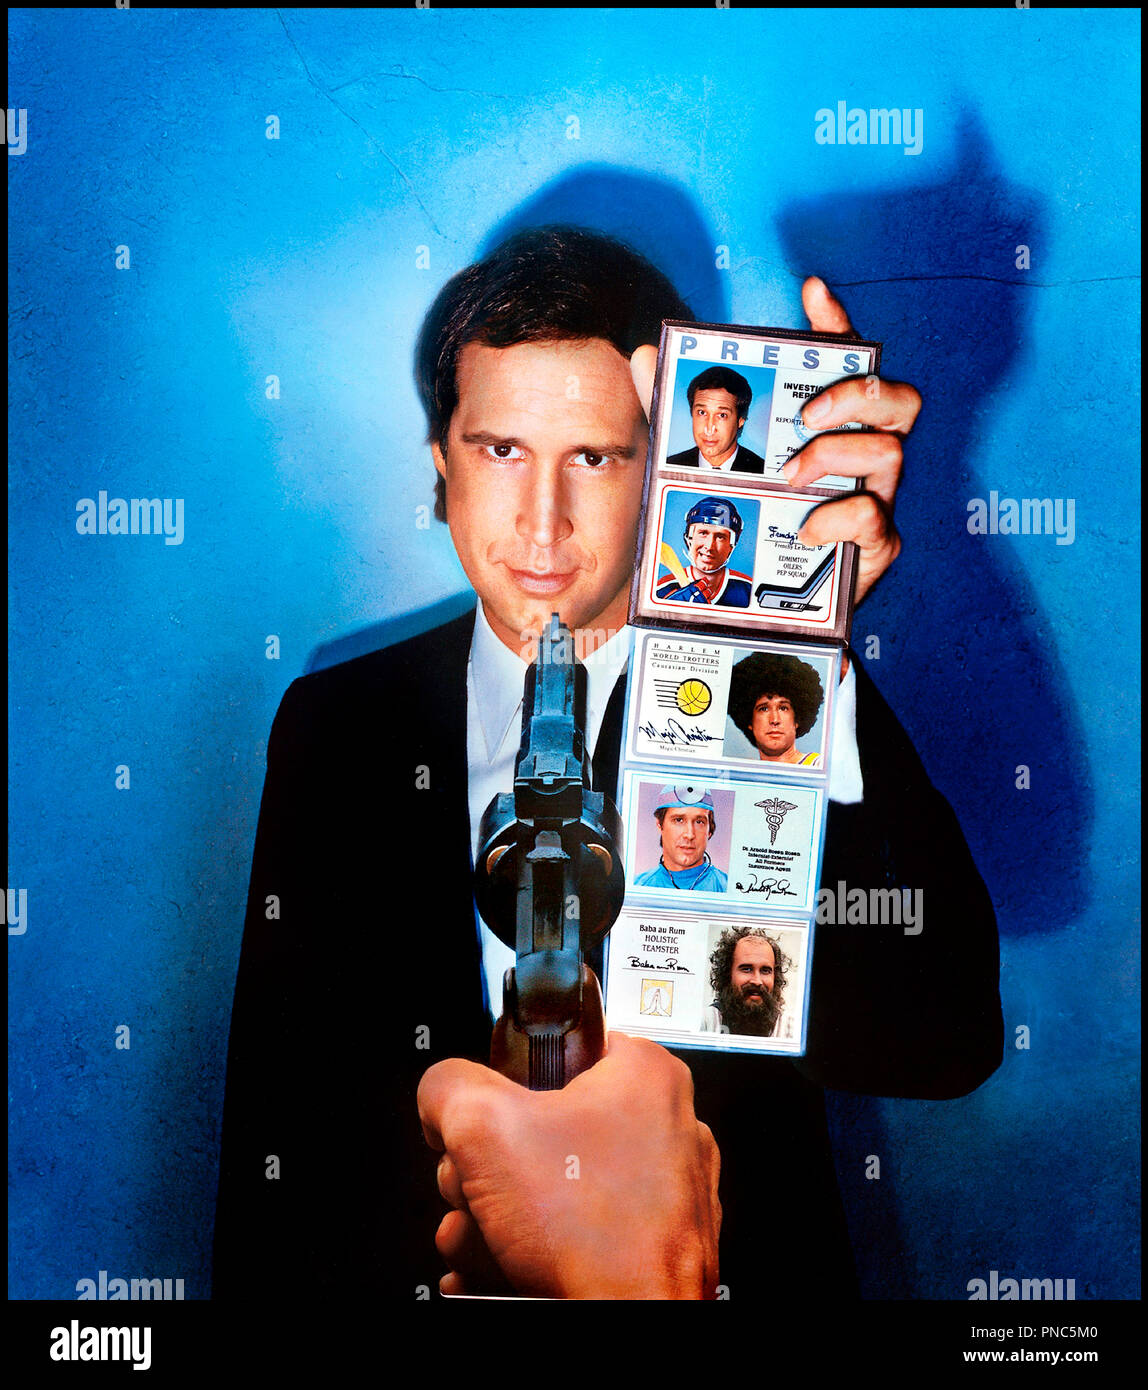 Fletch Stock Photos & Fletch Stock Images - Alamy